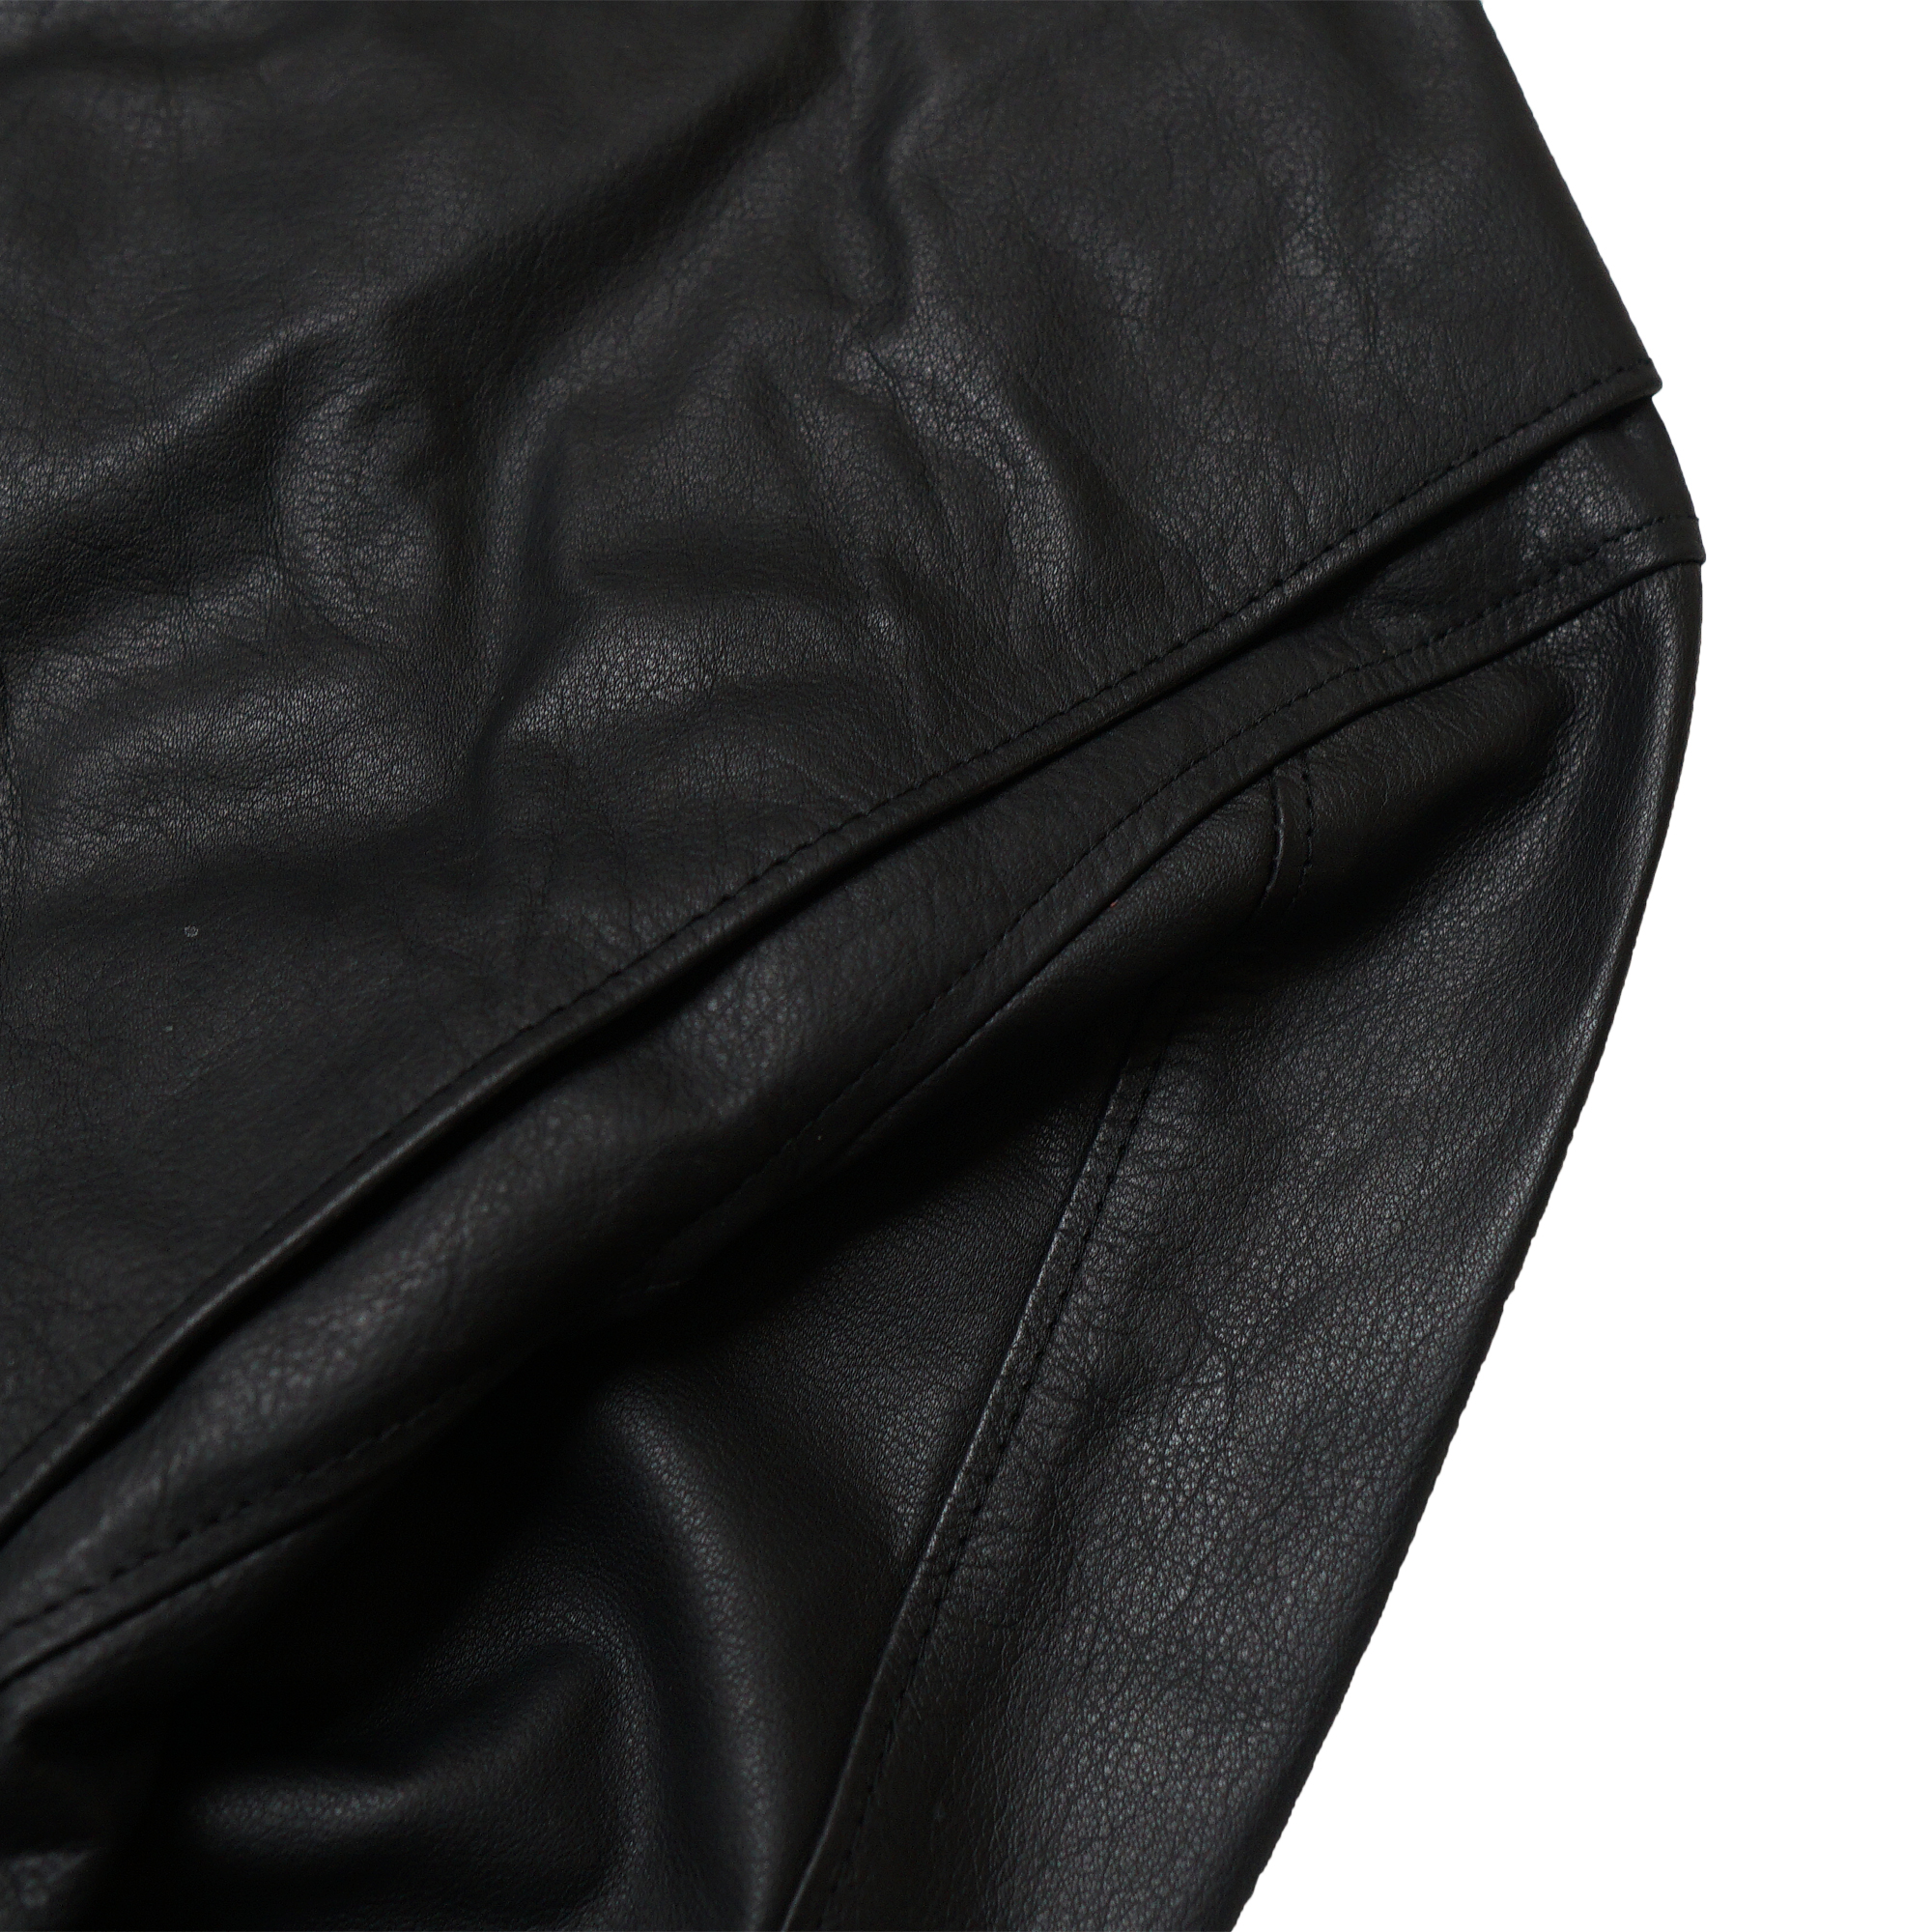 lawless_leather_jacket_detail_3